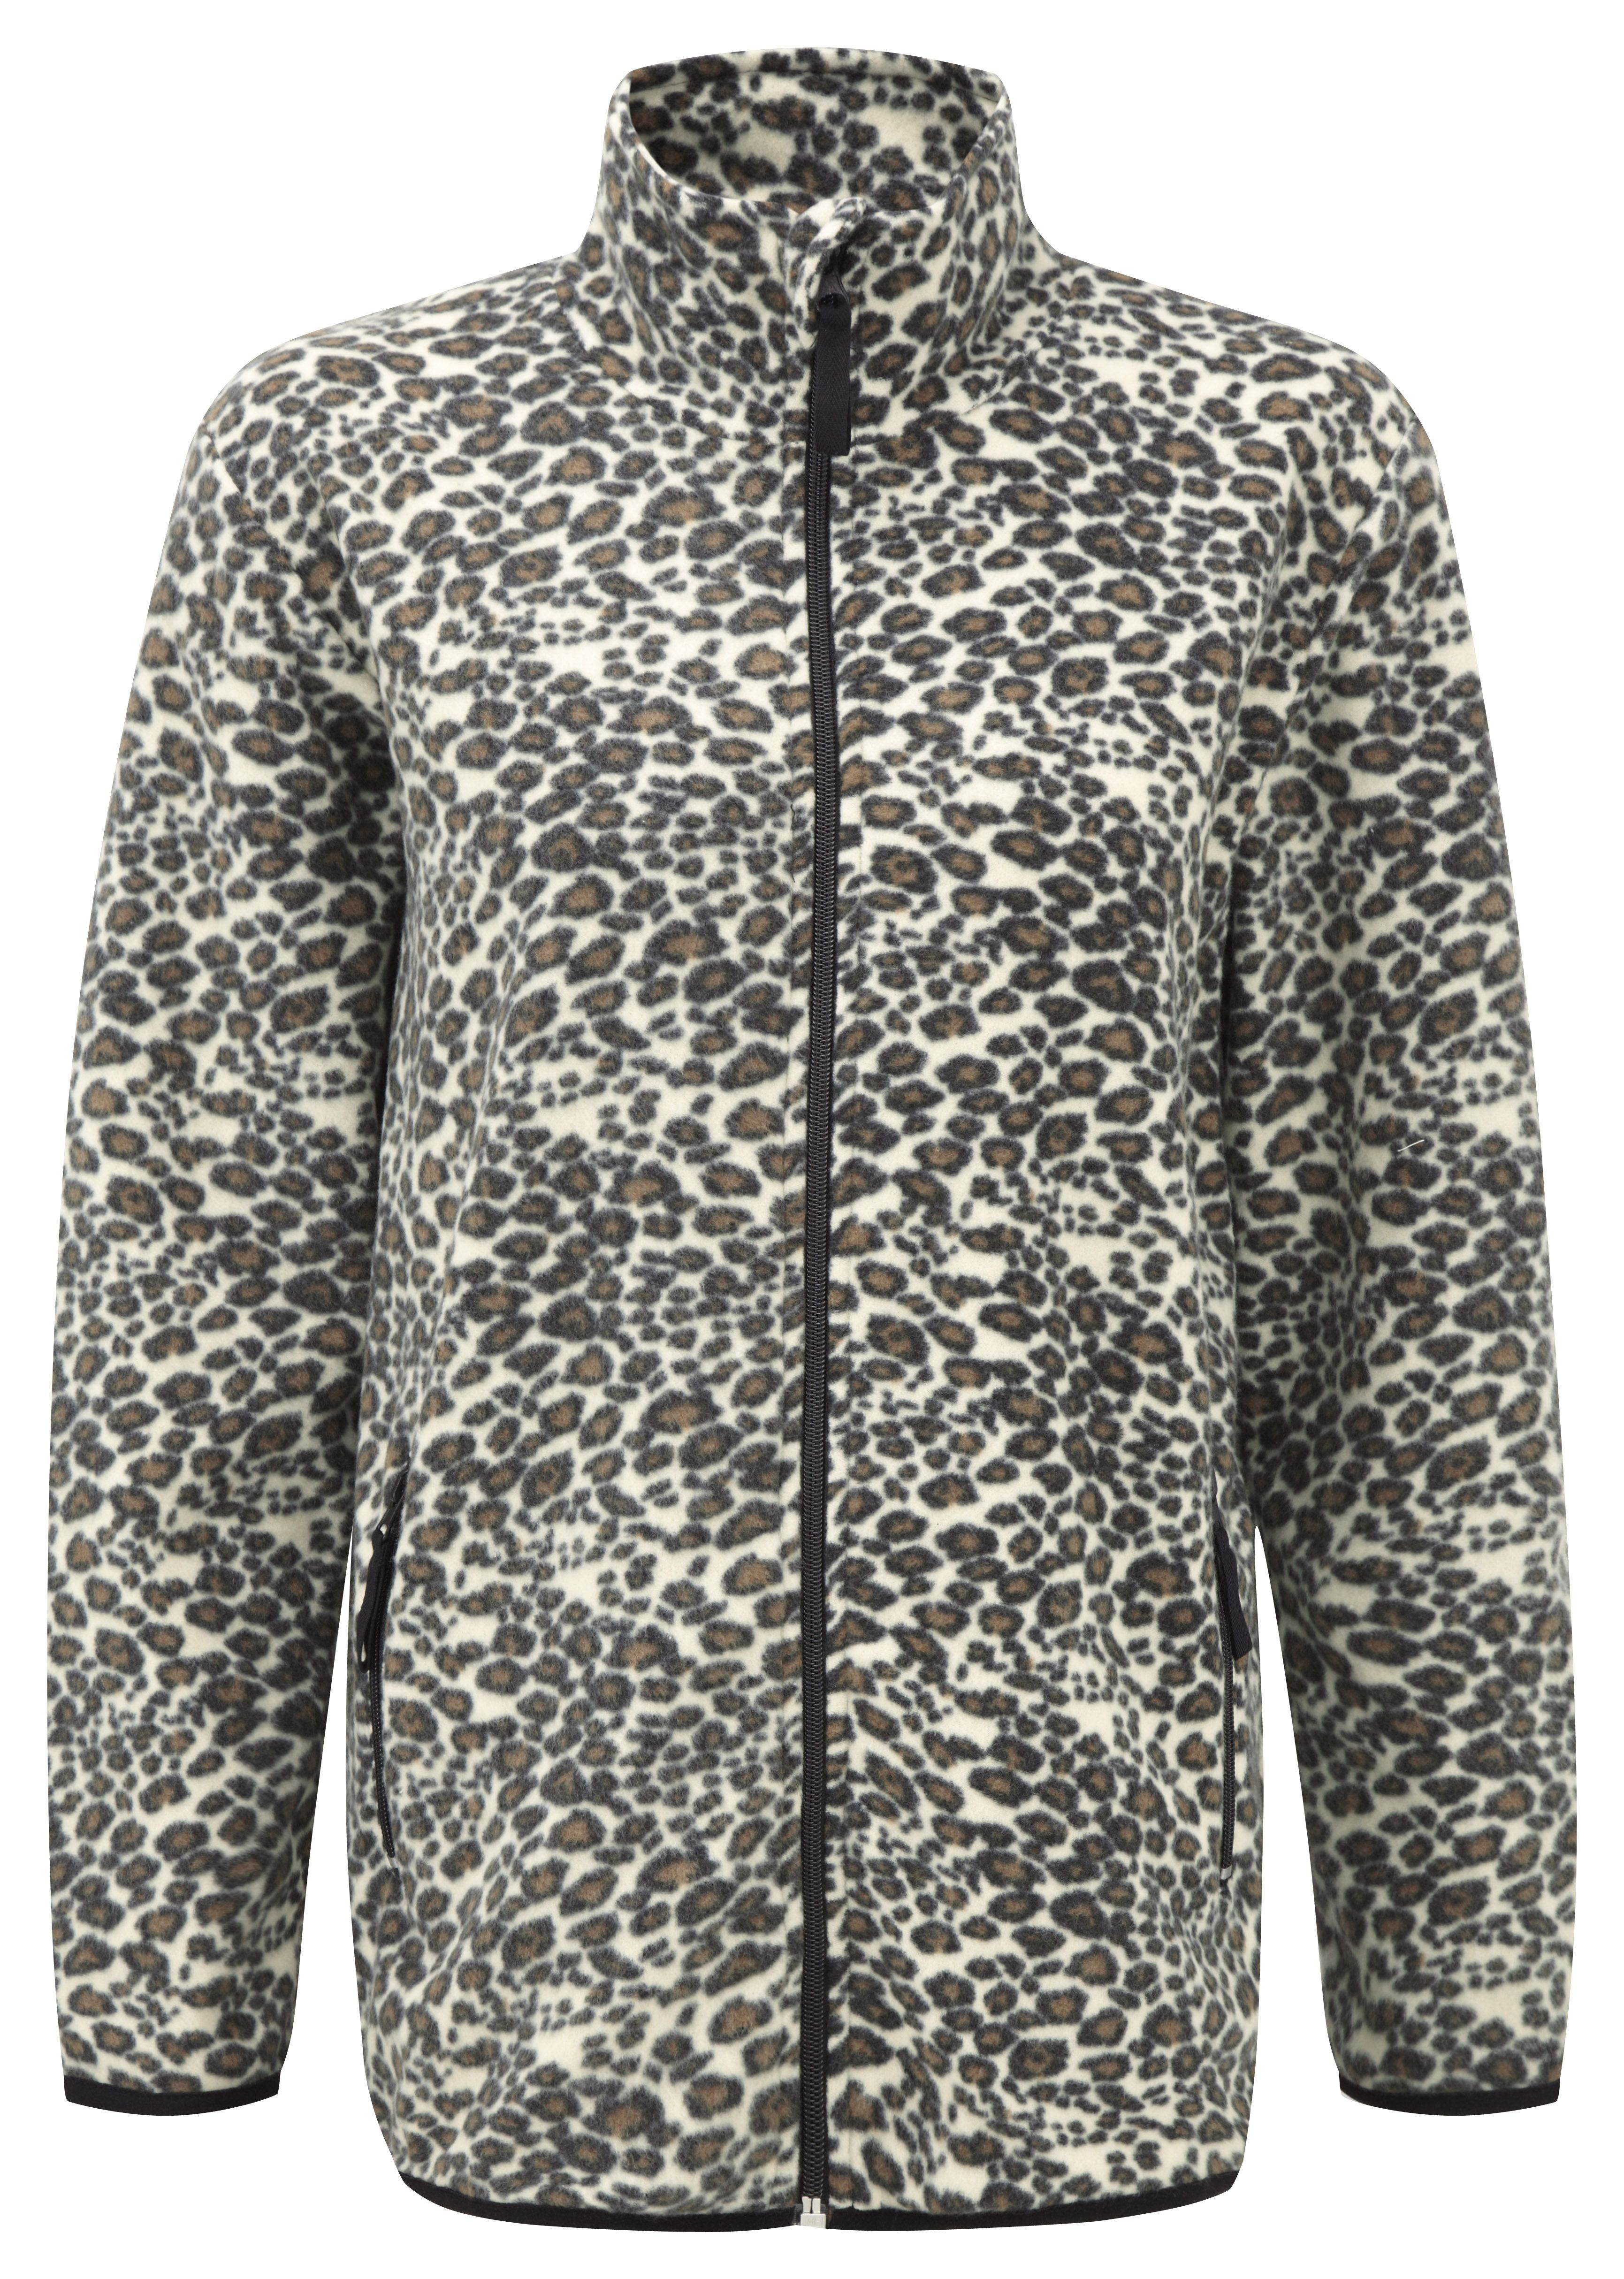 Damart Leopard Print Fleece Product Code W756 Www Damart Co Uk With Images Jumpers For Women Cable Knit Jumper Fleece